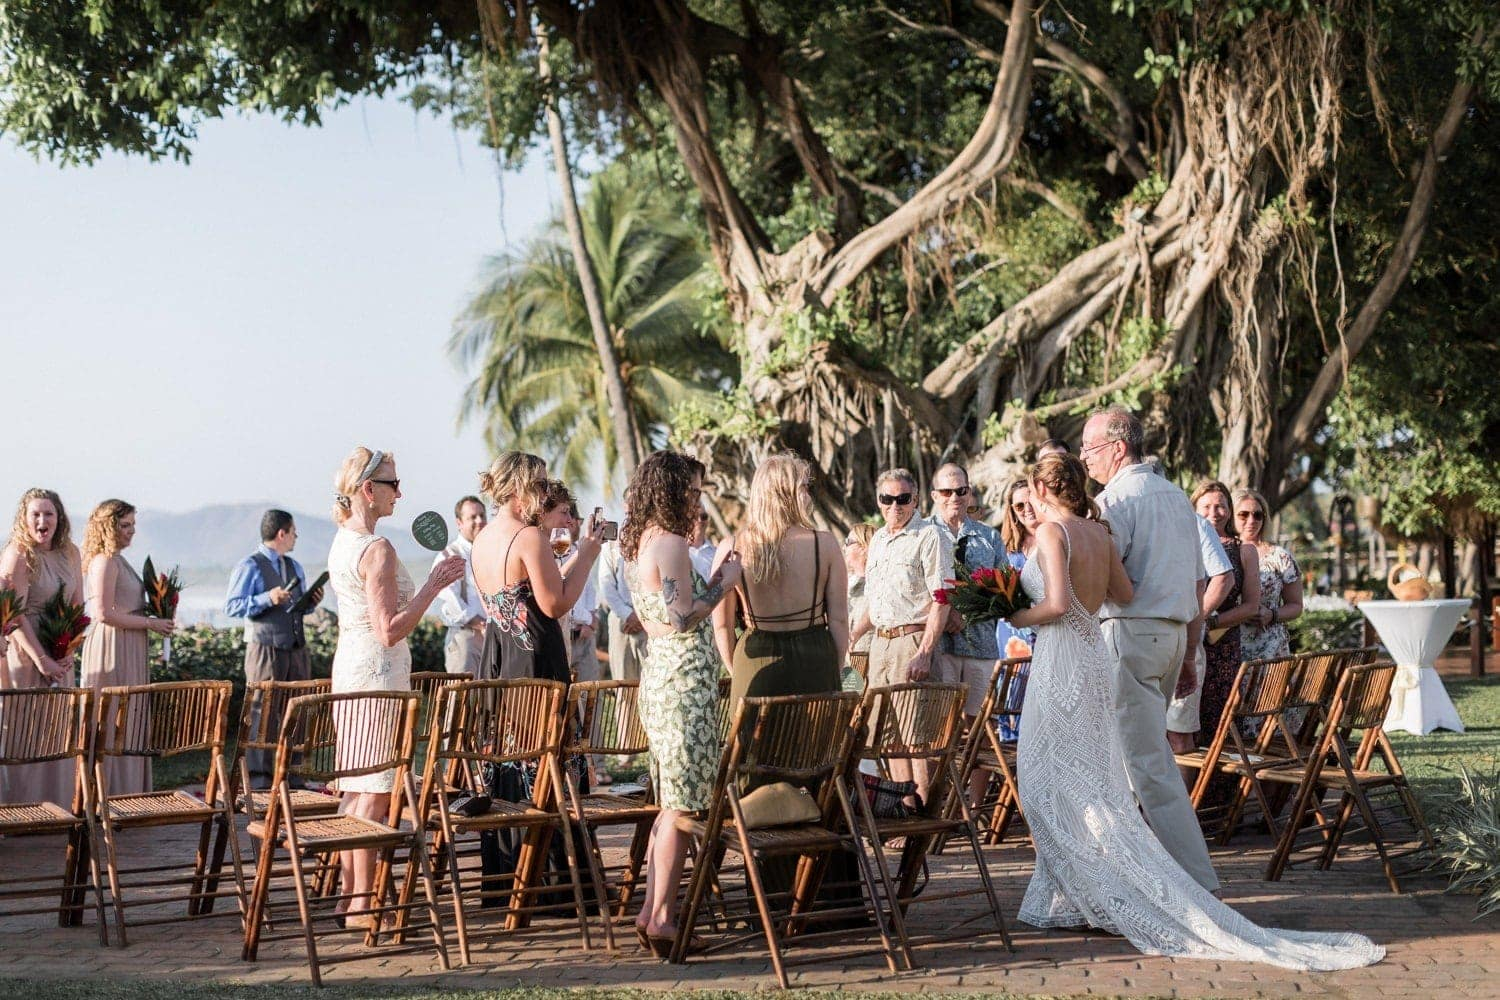 Father walks bride to altar at wedding venue in Costa Rica.